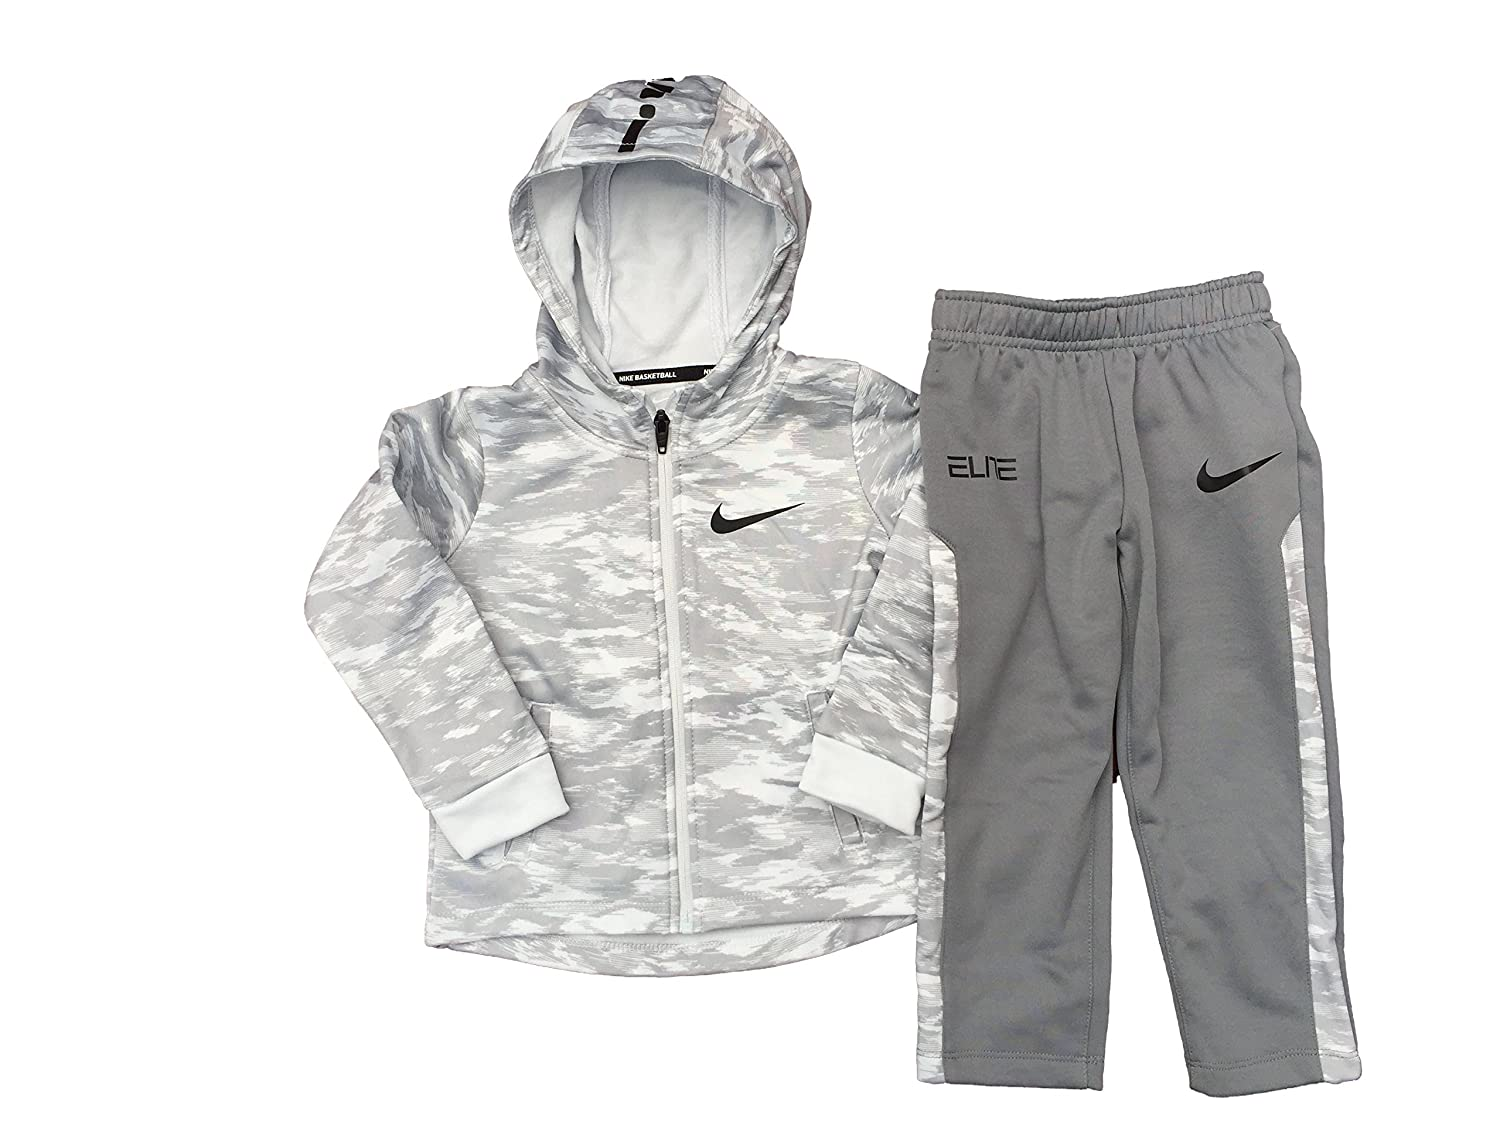 322736305a Dress him up as a future all star athlete in this 2-piece athletic jacket  and pants set by Nike.Athletic jacket & pants setToddler boy\'s sizes100%  ...